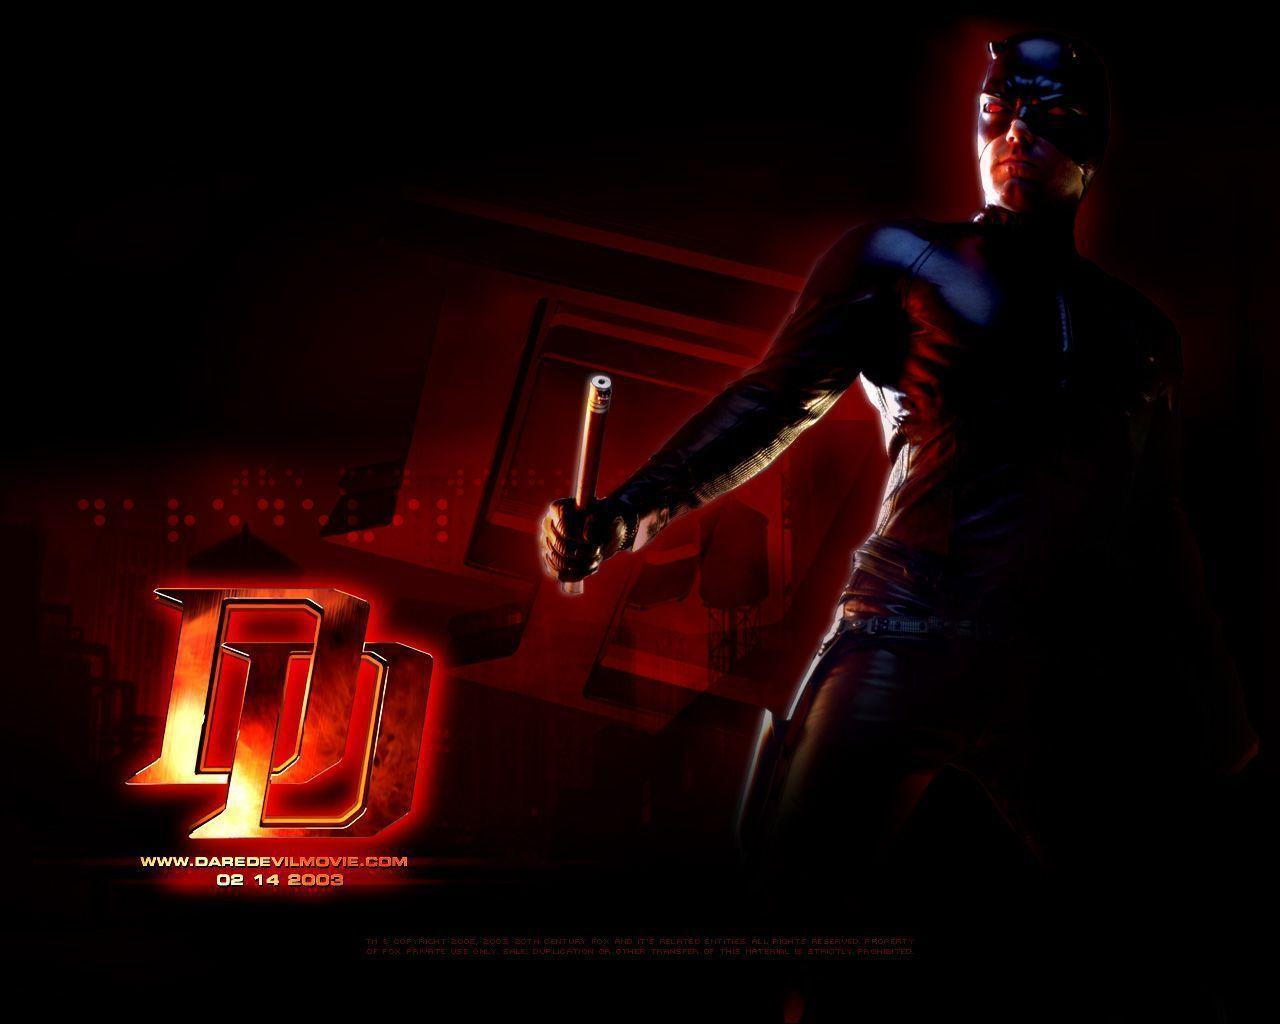 daredevil wallpaper in - photo #48